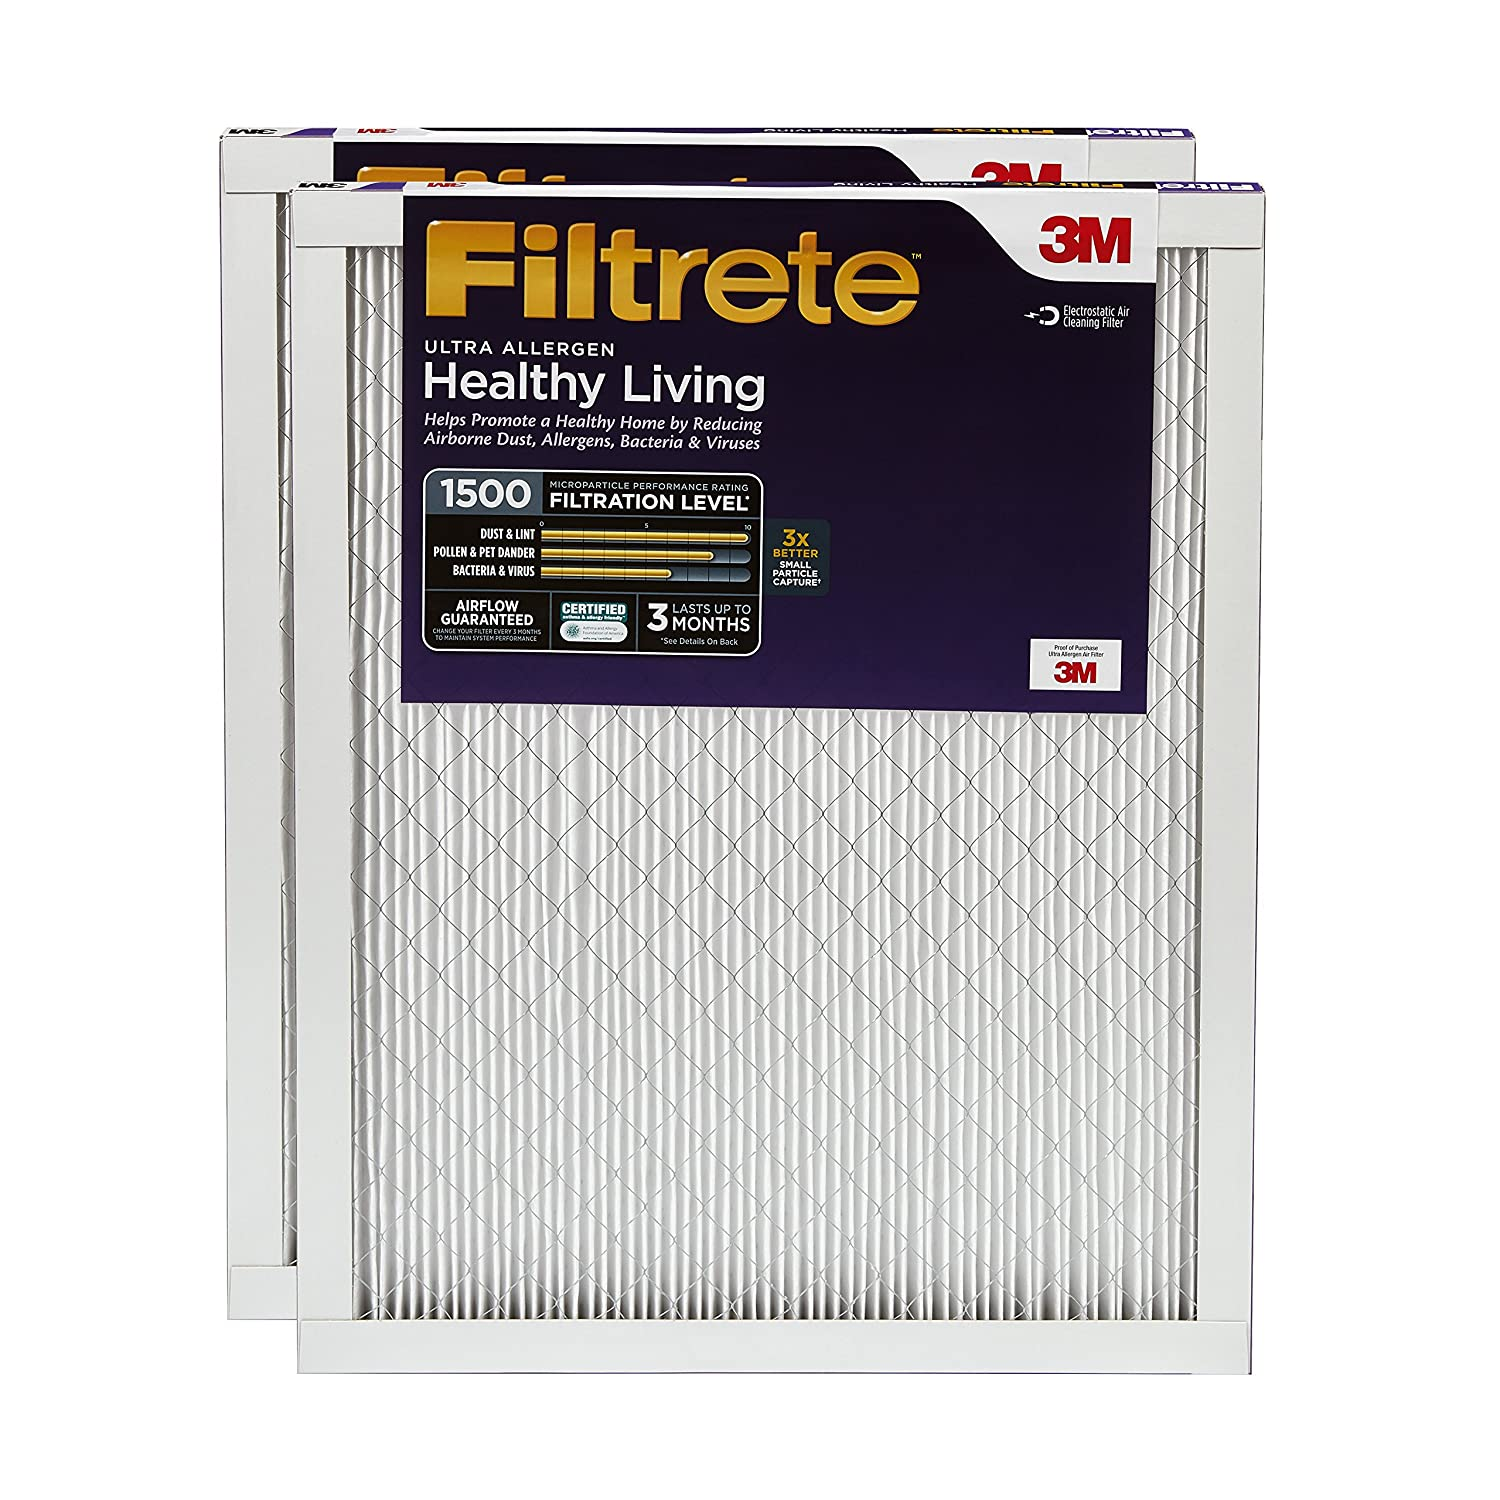 3M Filtrete Healthy Livingフィルター 14x20x1 UR05-2PK-6E 2 B00TUDHPSS 14x20x1|2 14x20x1